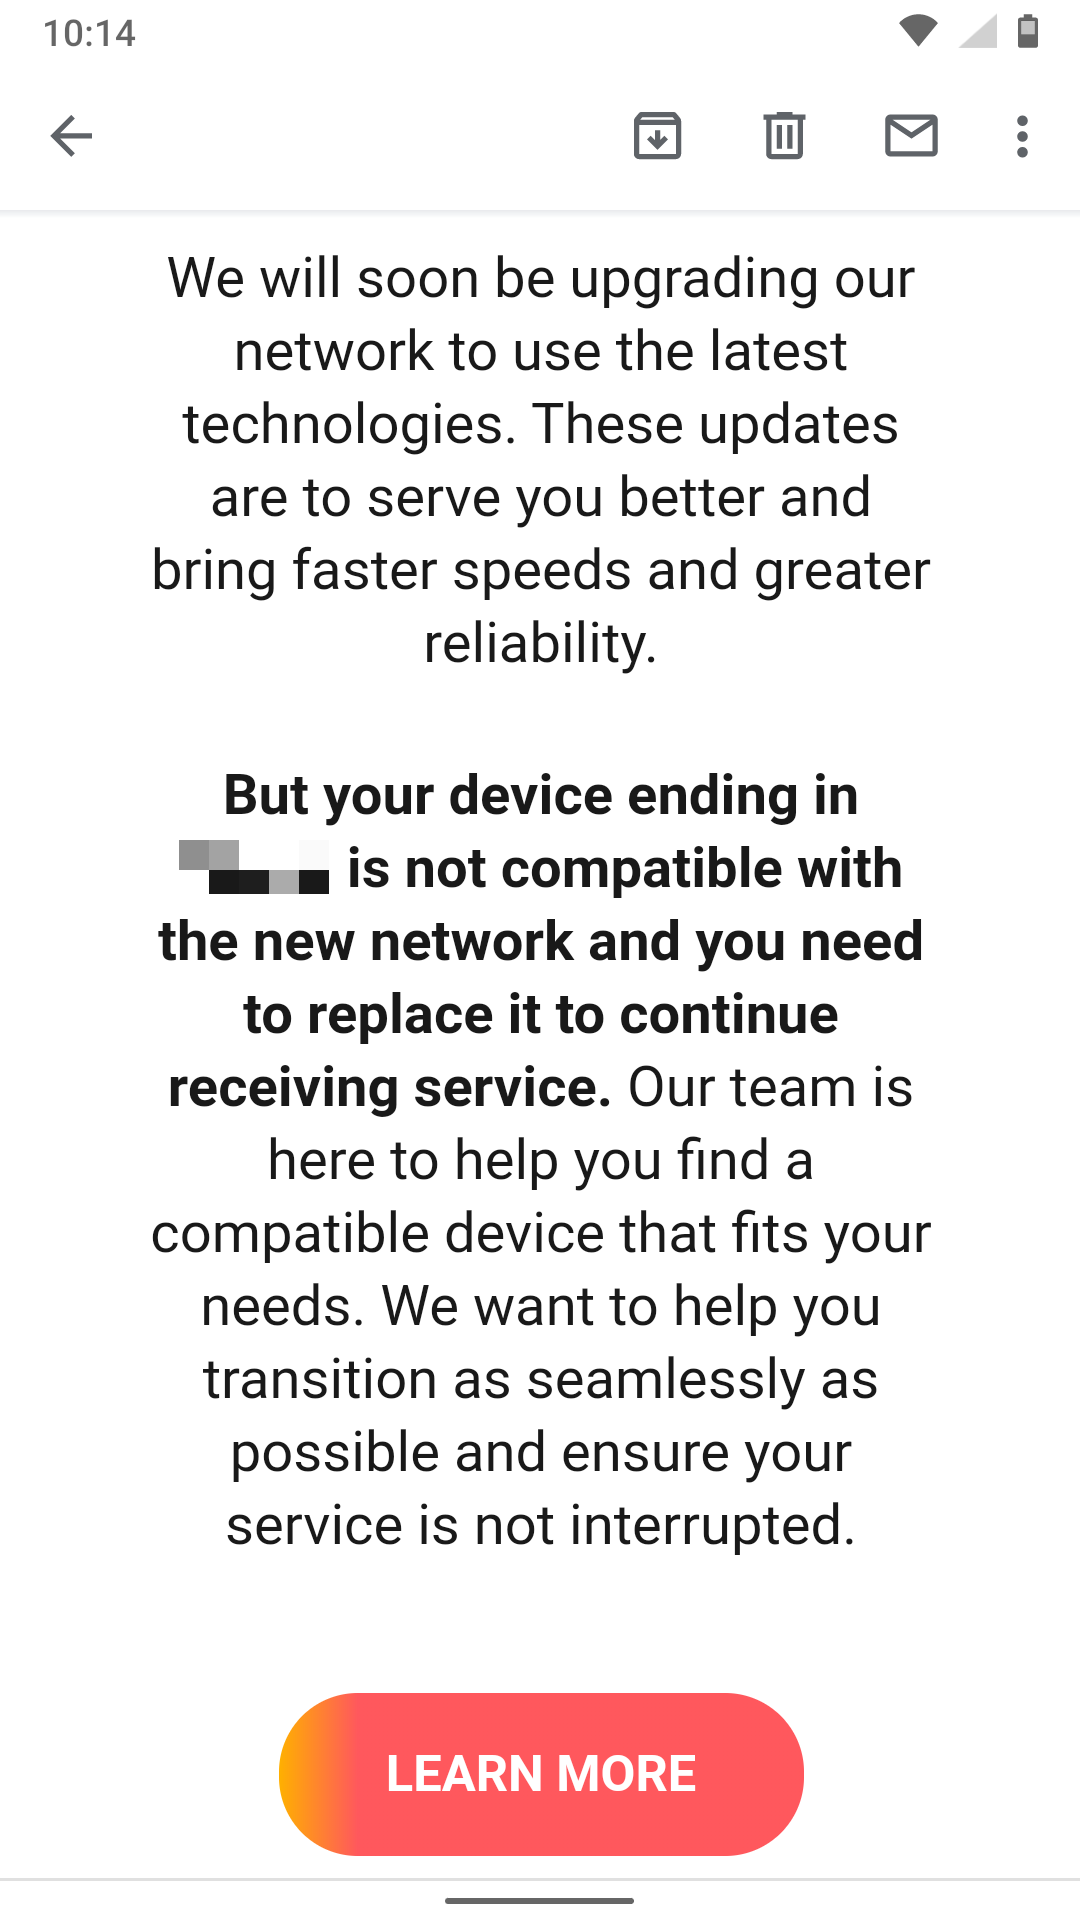 At T Is Scaring Customers Into Buying New Phones With A Misleading Email